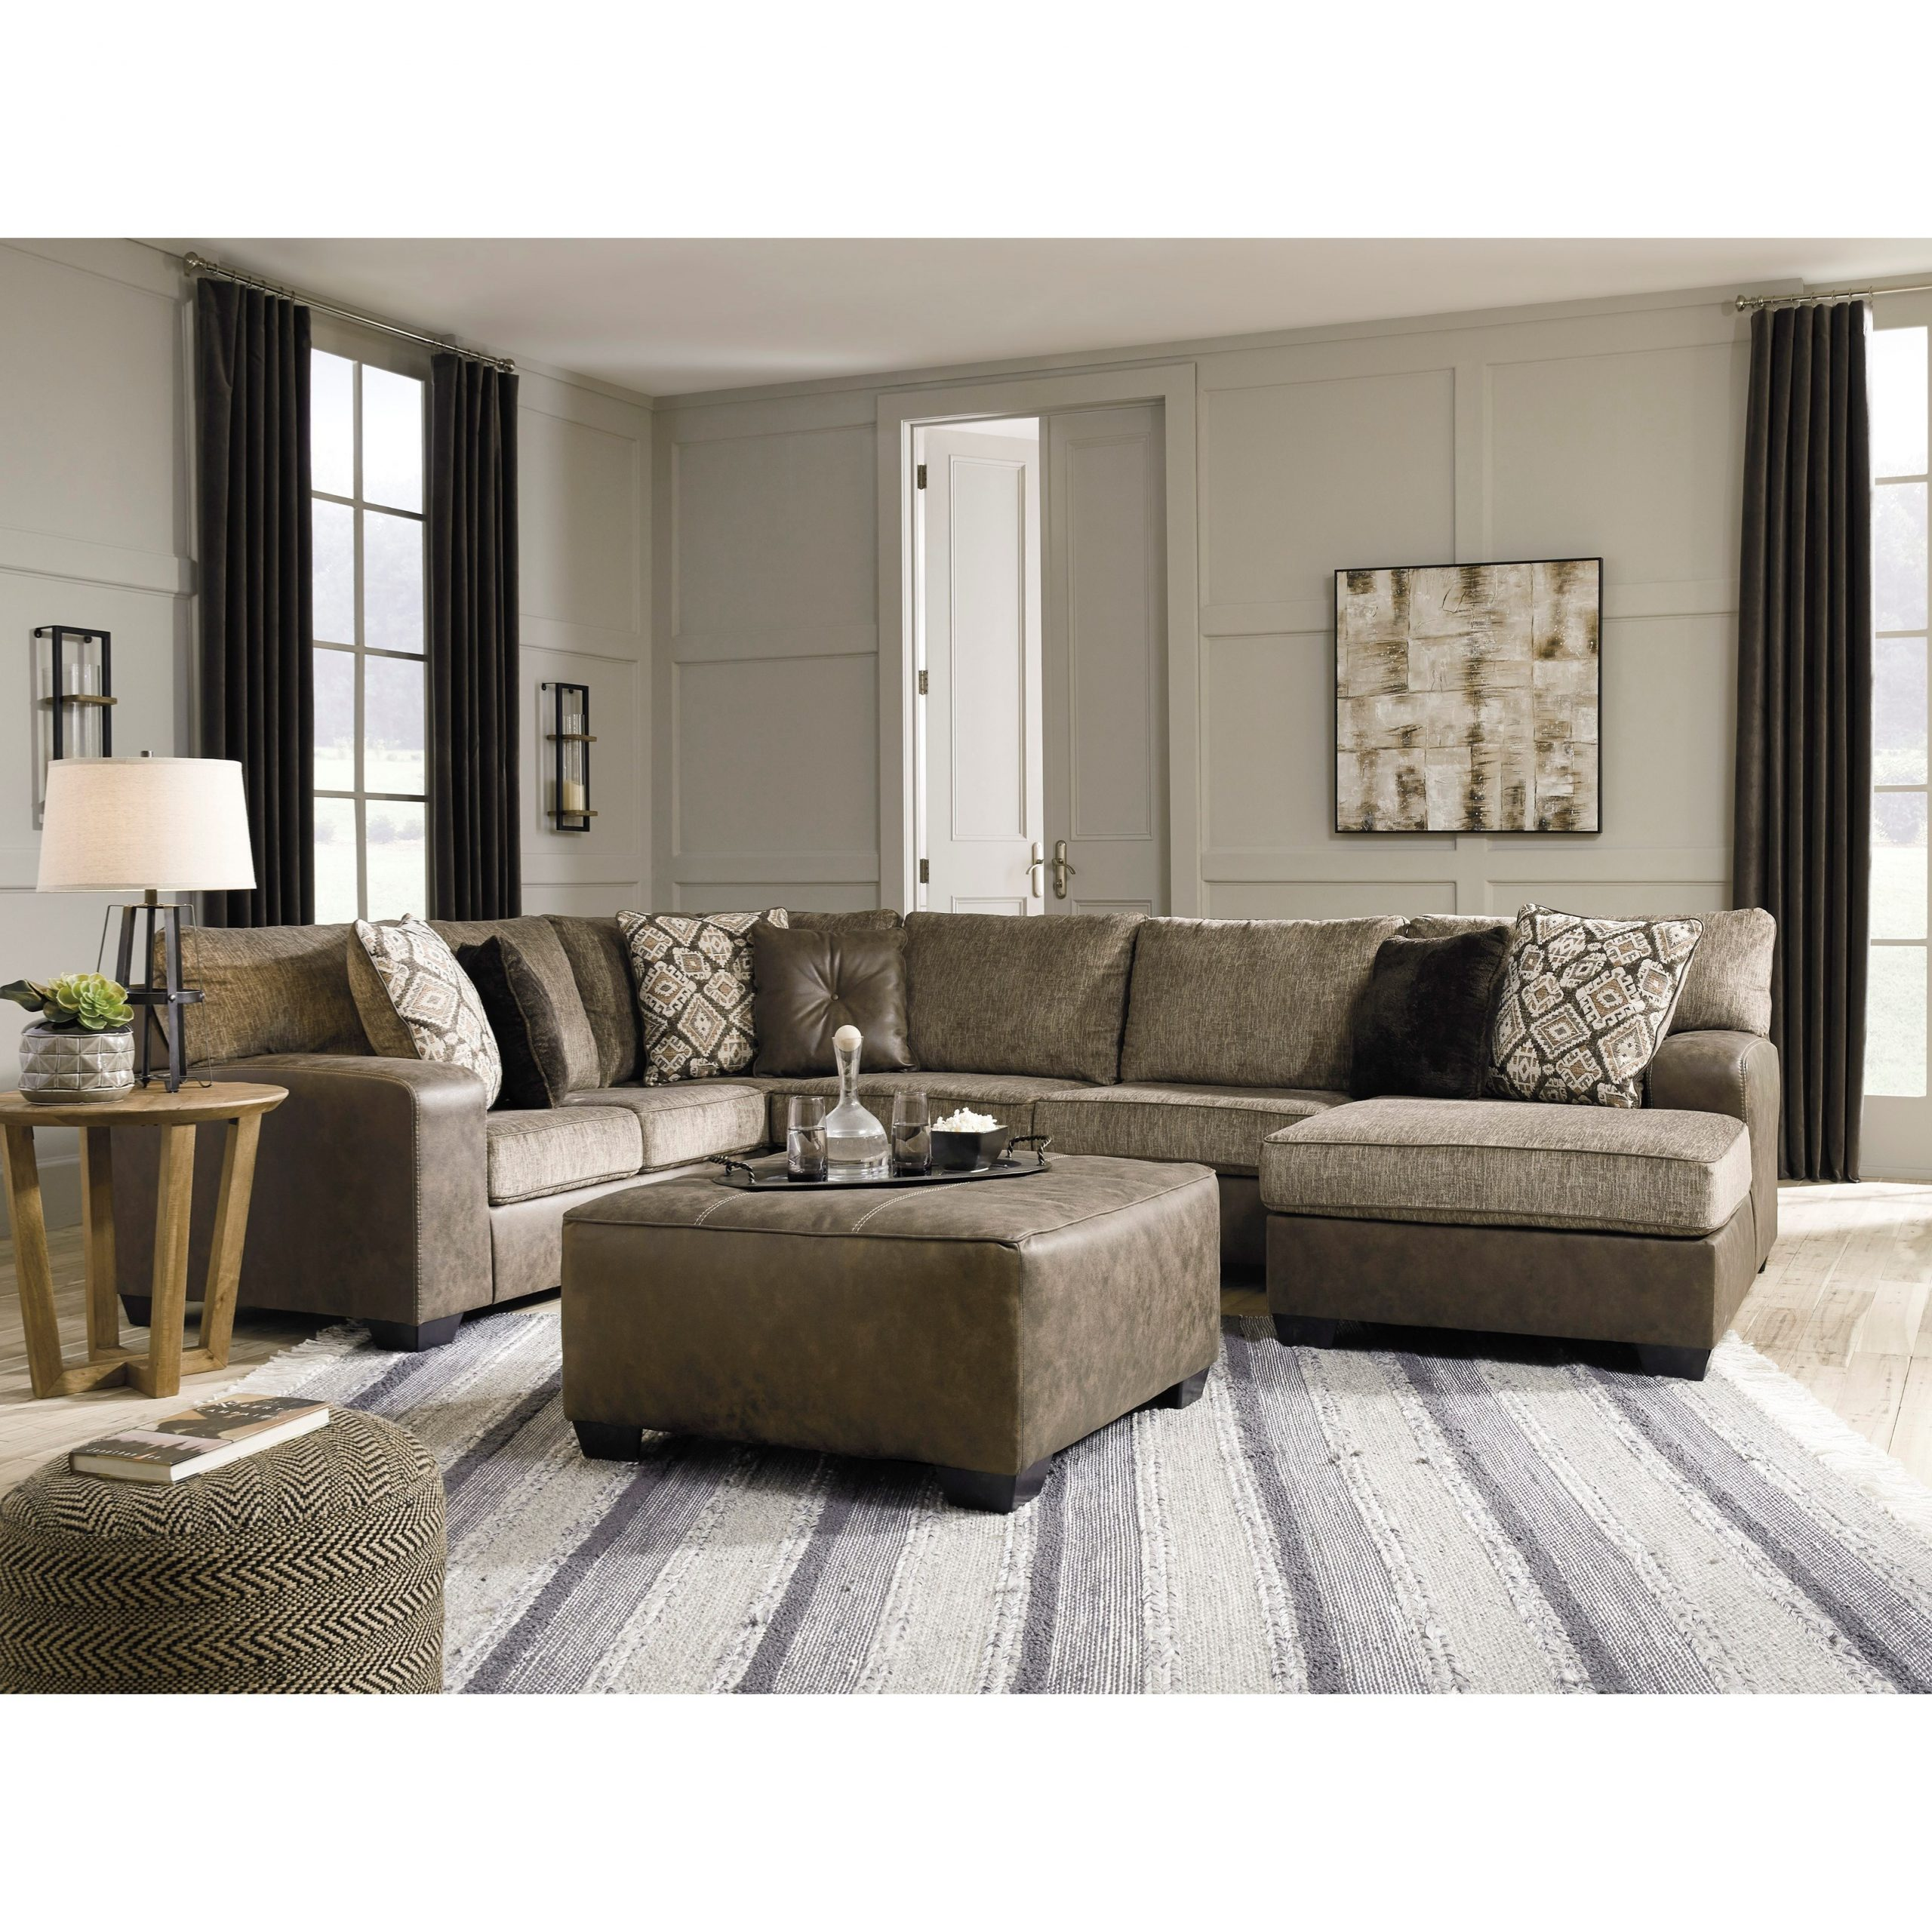 Ashley Furniture Benchcraft Abalone Brown Faux Leather With Latest 3pc Faux Leather Sectional Sofas Brown (View 18 of 20)